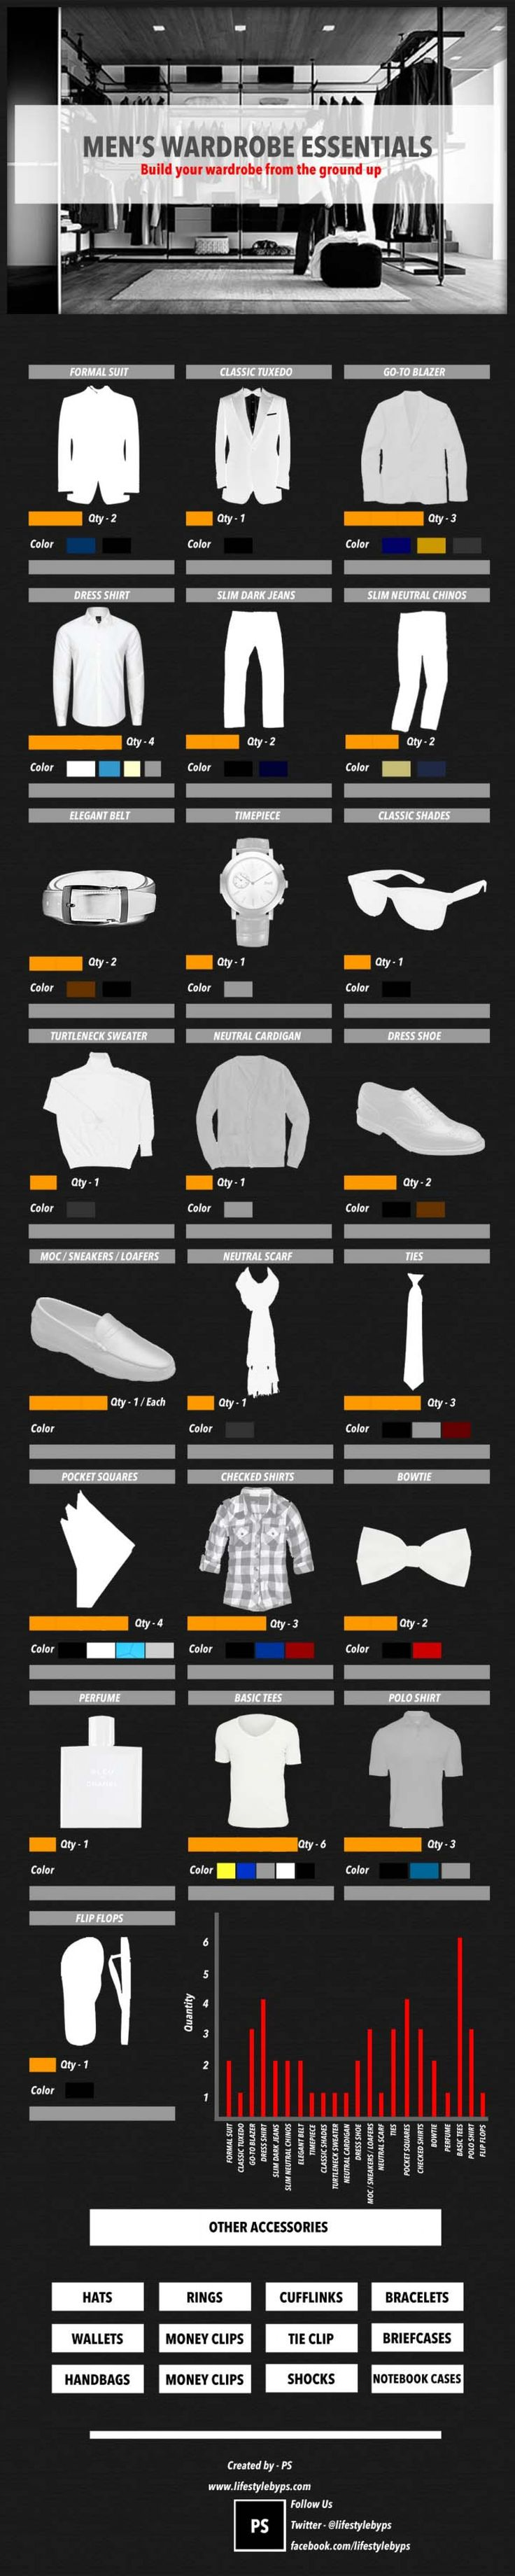 Build your wardrobe from the ground up - Wardrobe essentials for Men | Visual.ly